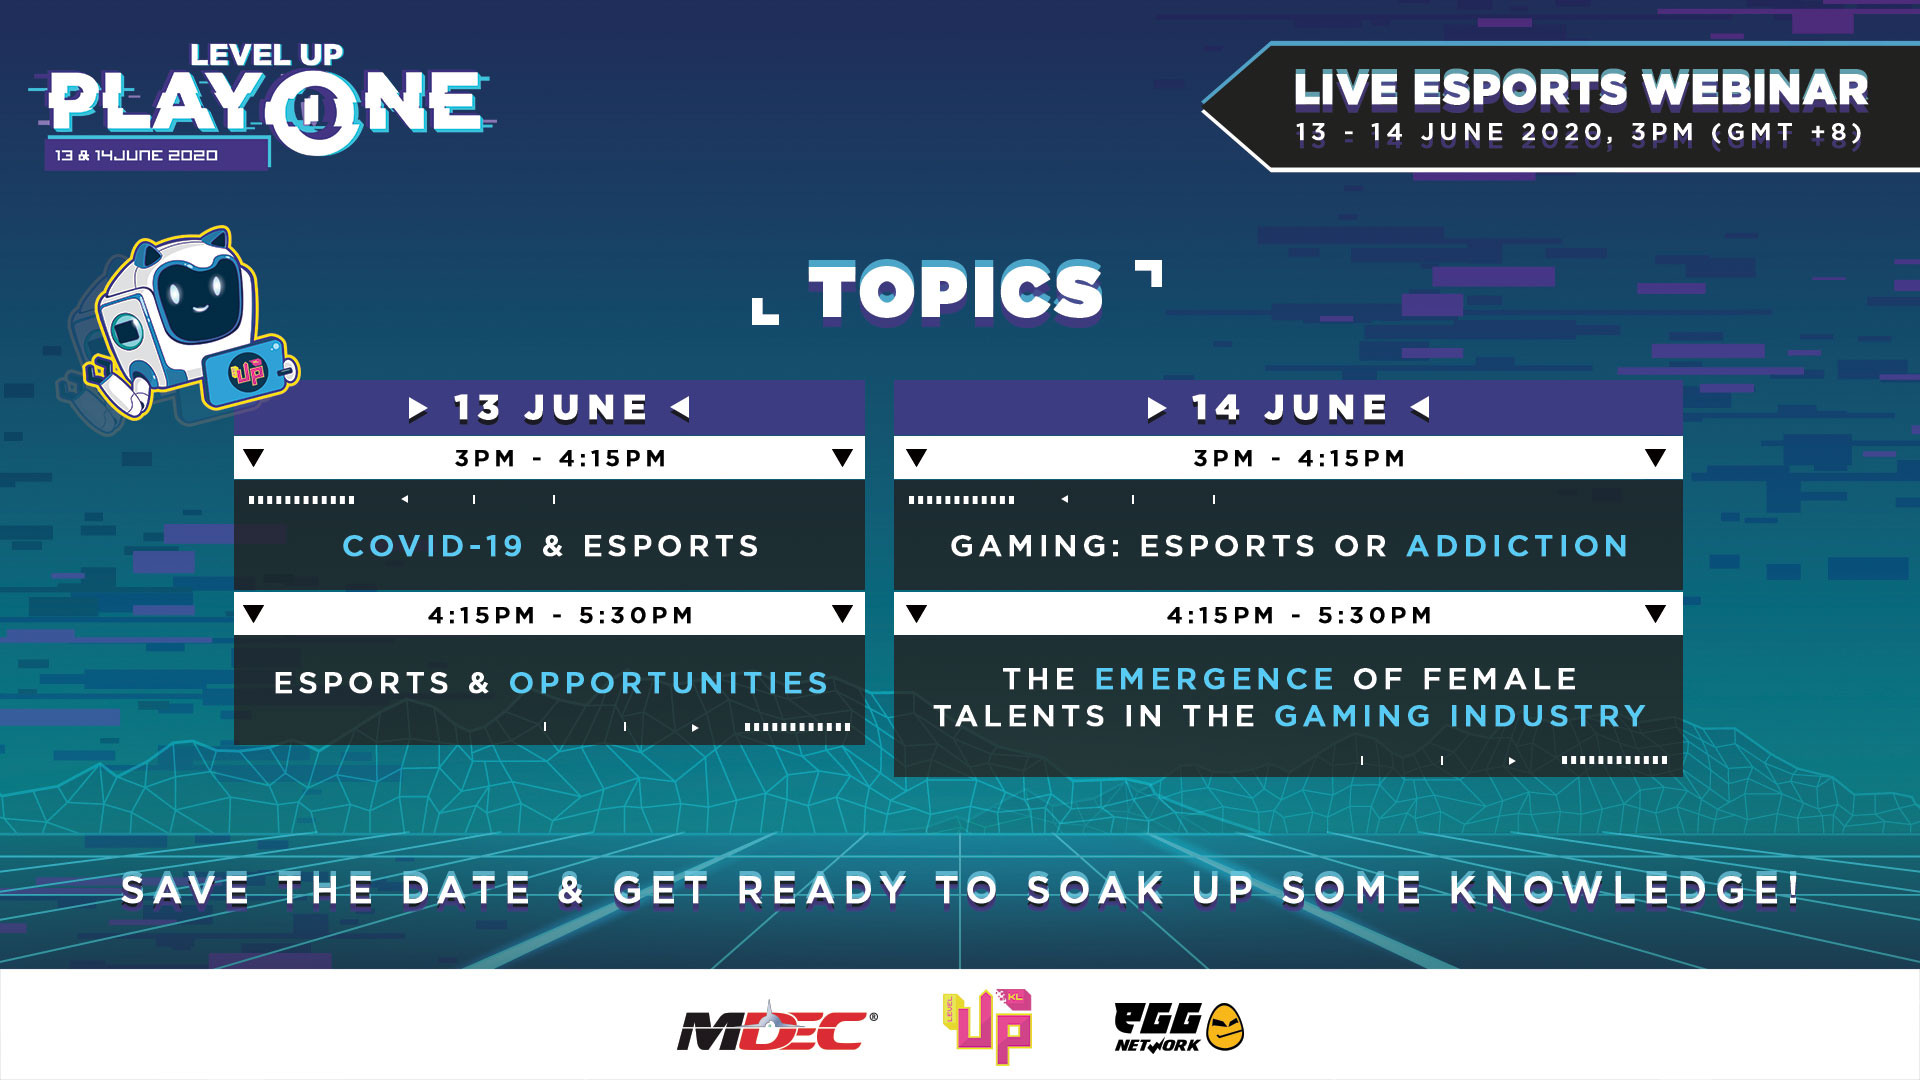 Malaysia's Online Gaming Conference and Festival – LEVEL UP SPACEBAR and PLAY-ONE